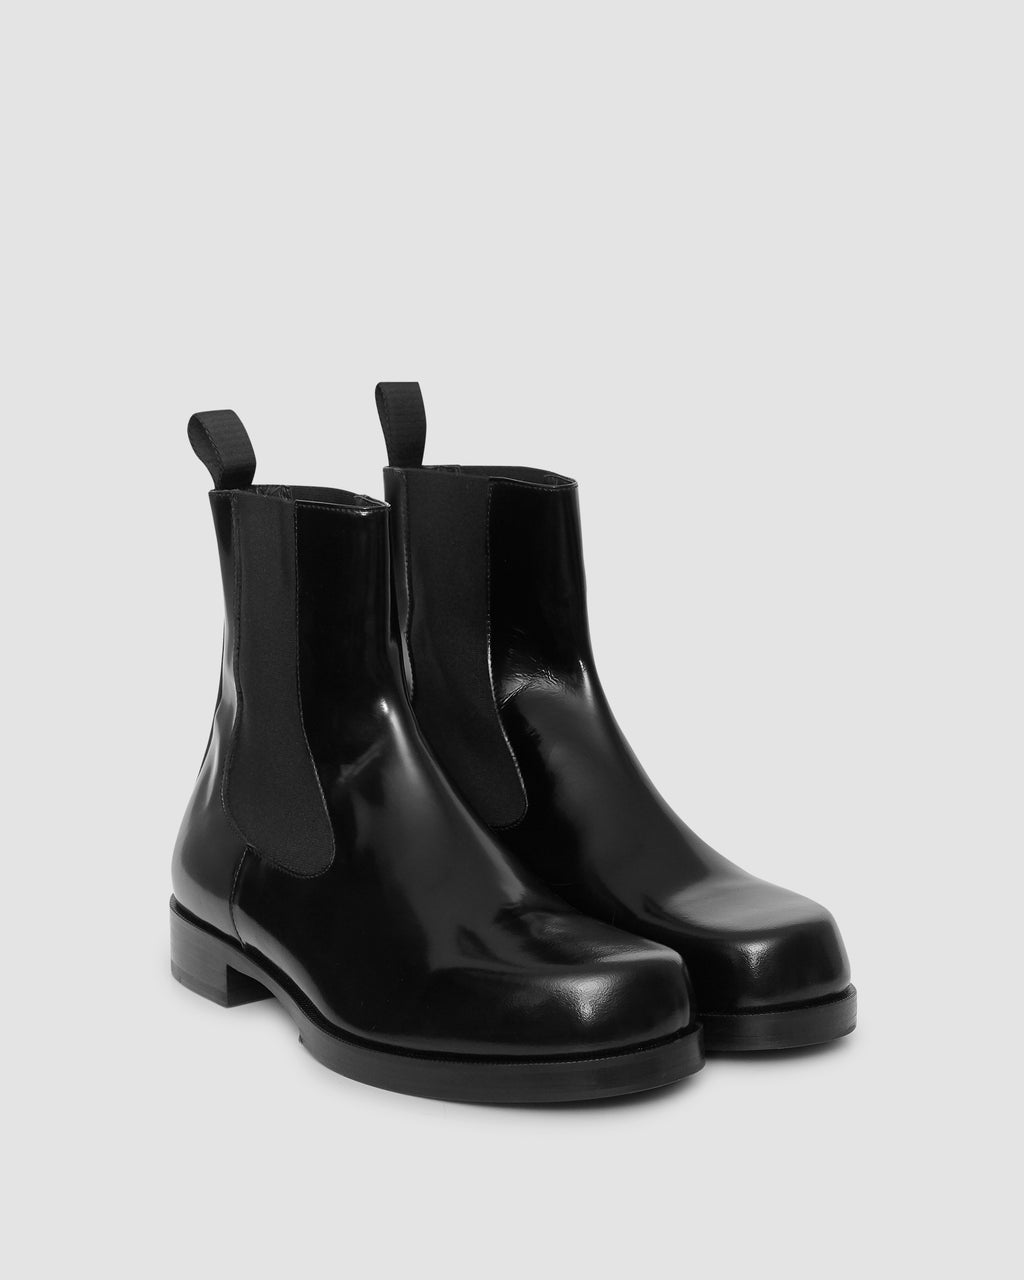 1017 ALYX 9SM | CHELSEA BOOTS + REMOVABLE SOLE | Shoe | BLACK, BOOTS, Google Shopping, Man, S20, S20EXSH, Shoes, UNISEX, Woman